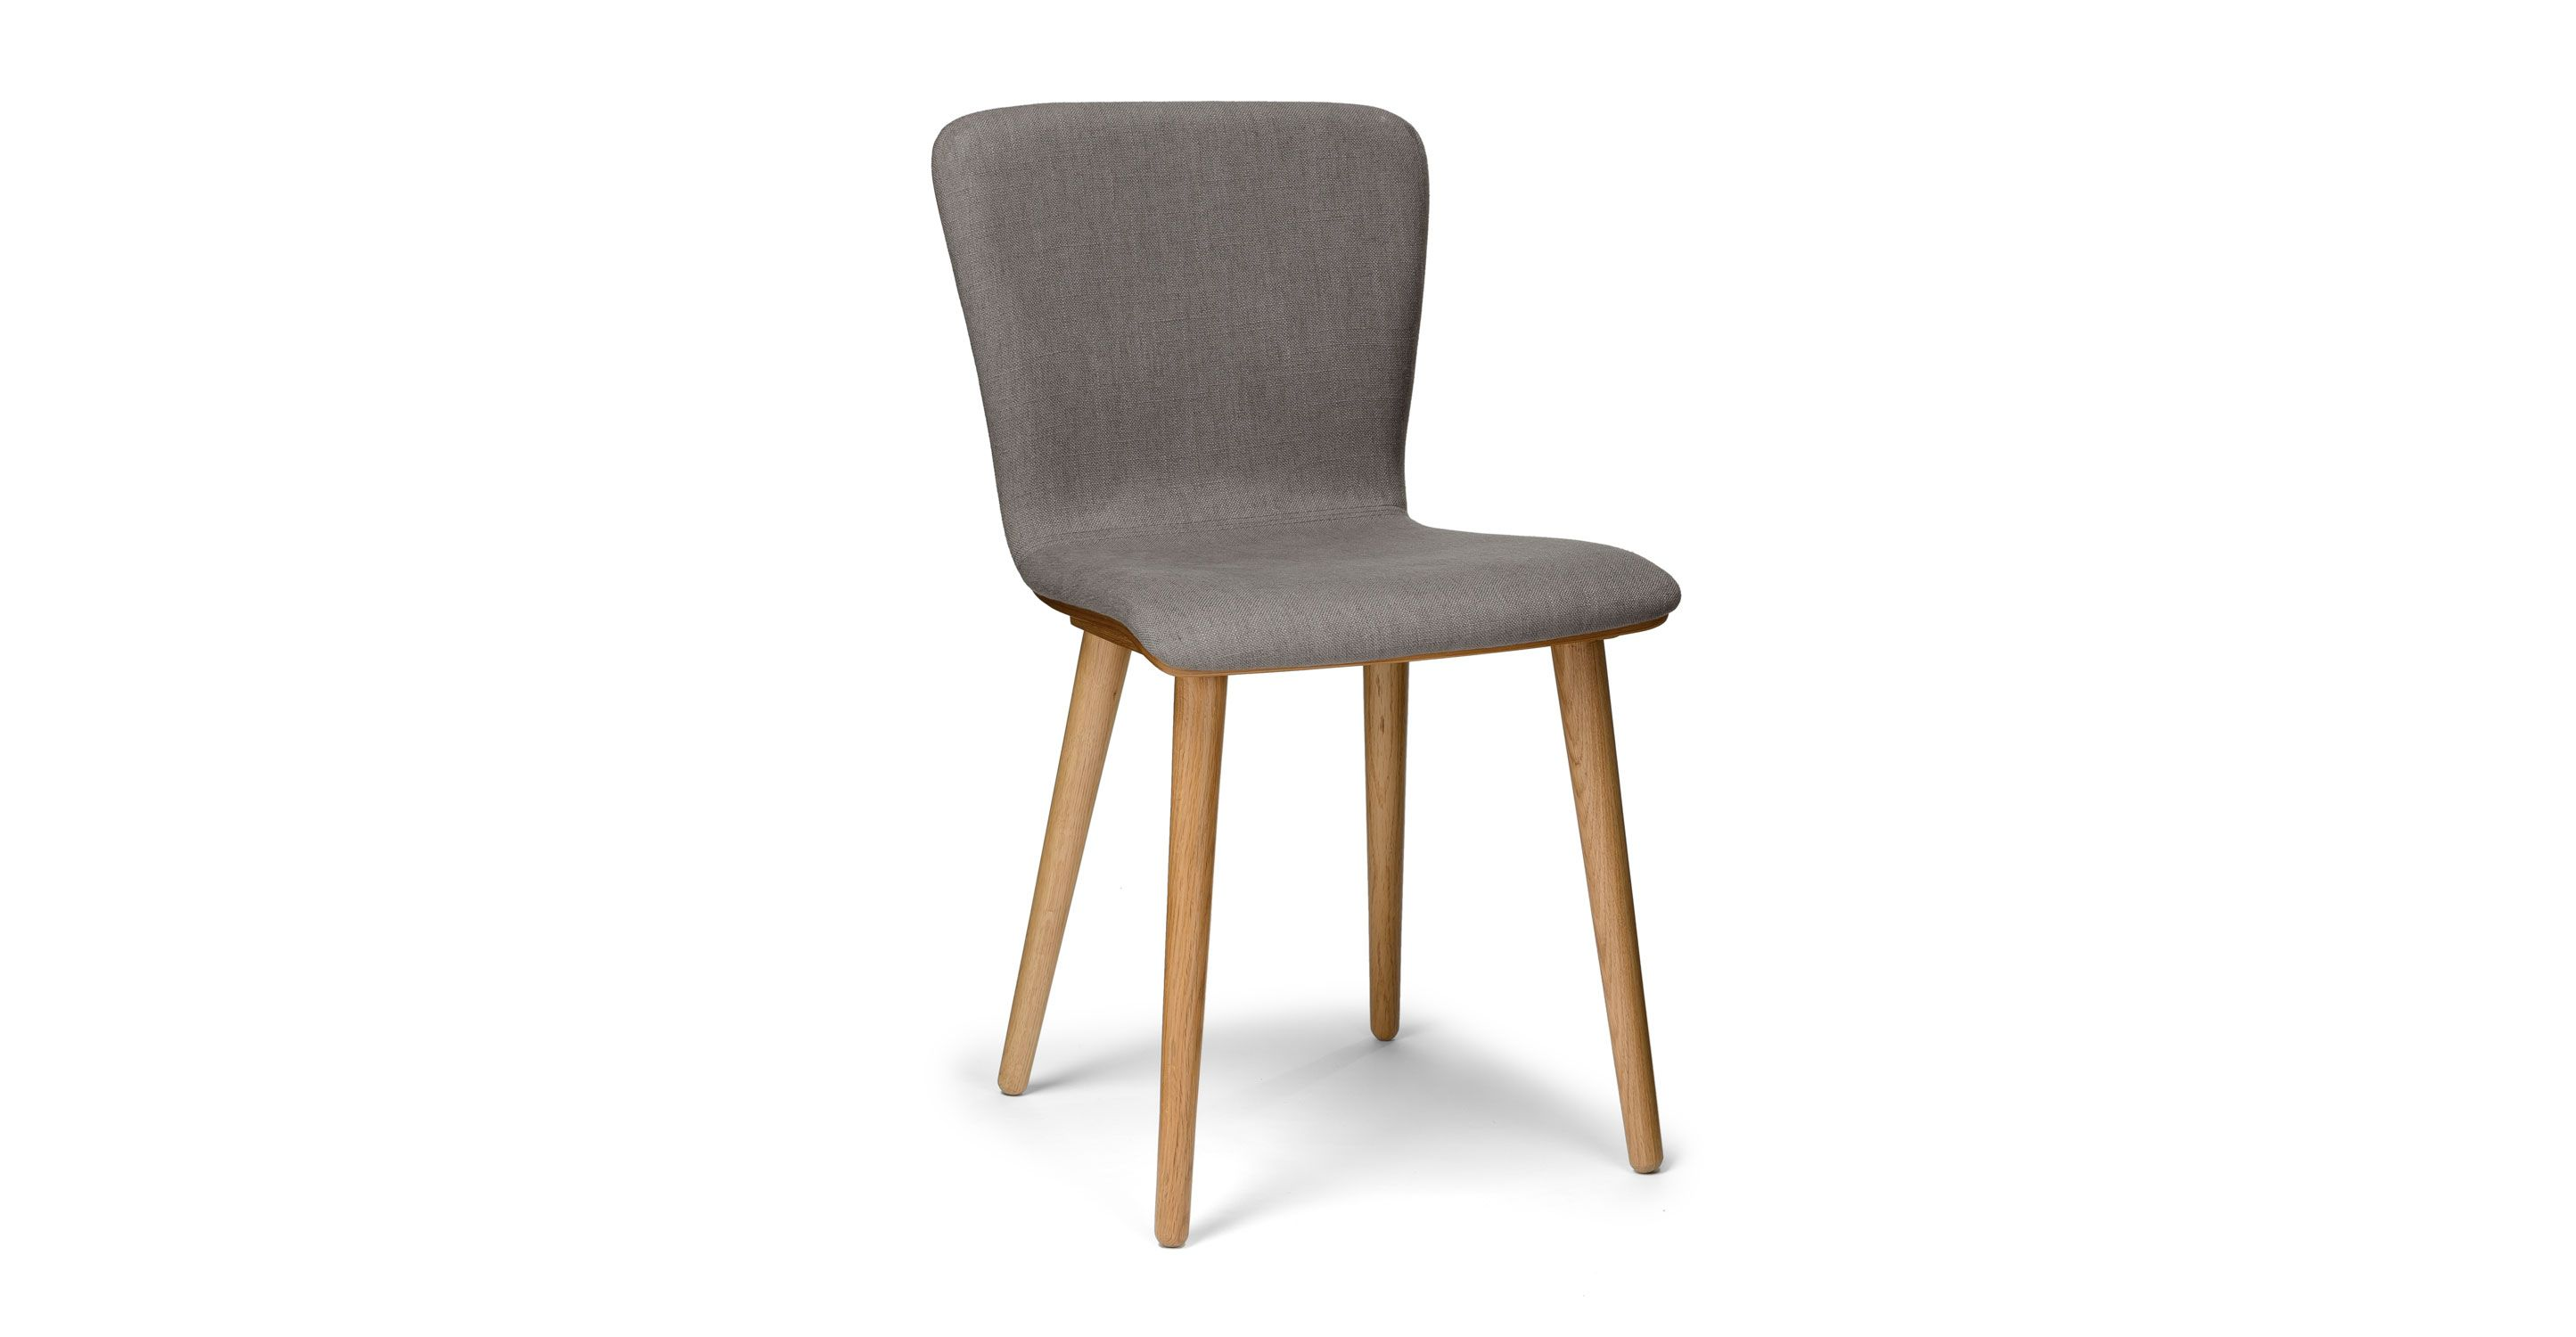 dining chairs contemporary. 2 X Gray Dining Chair In Oak Wood-Upholstered | Article Sede Modern Furniture Chairs Contemporary